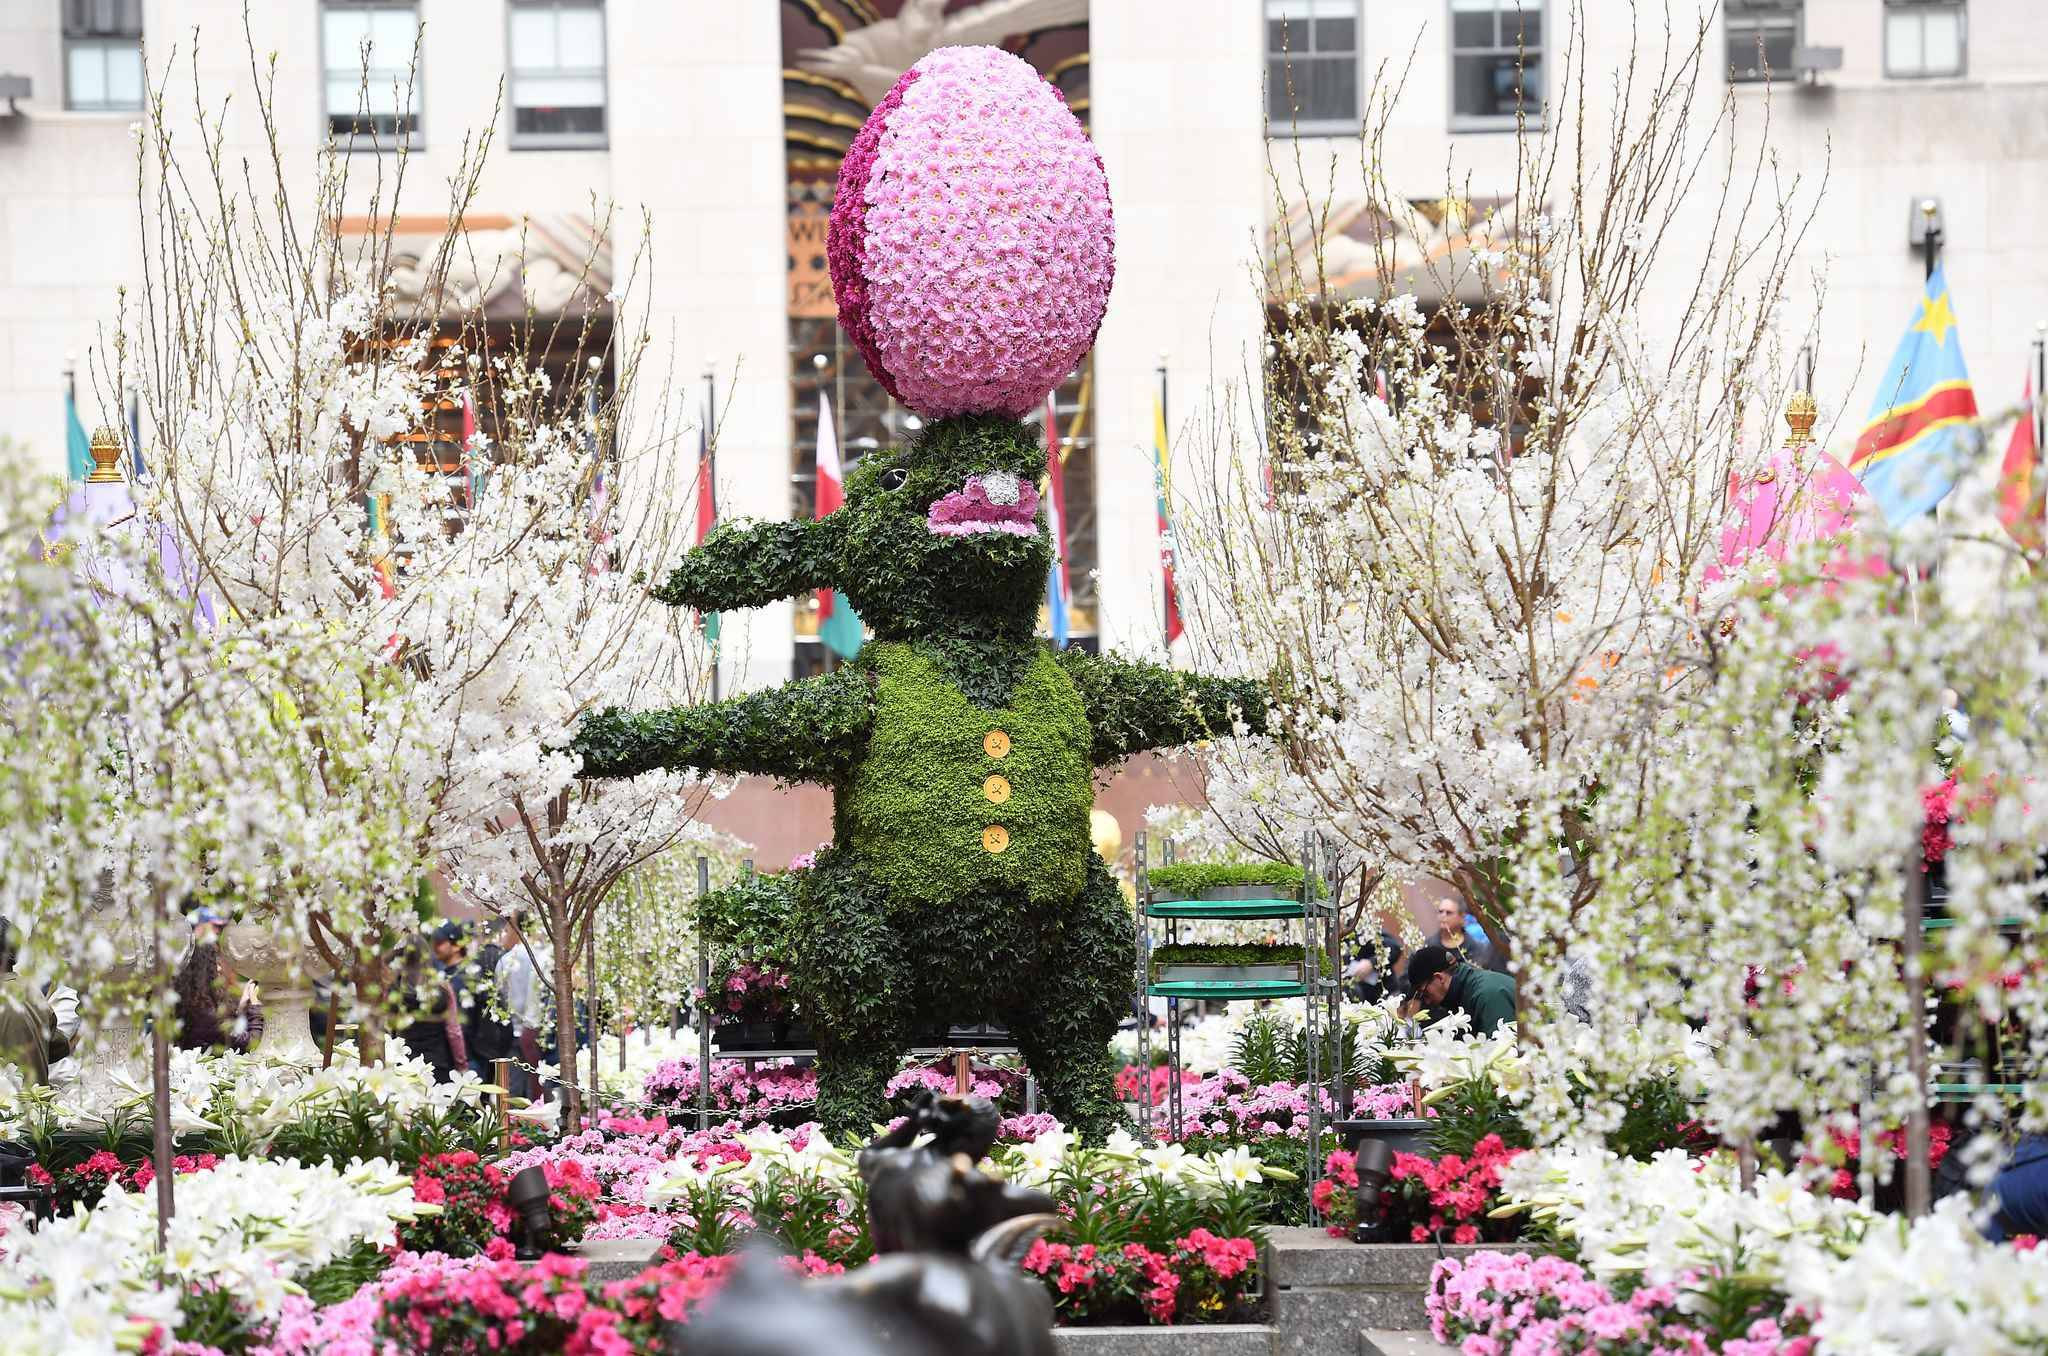 Thousands of white Easter Lilies are planted at the base of a 12-foot tall Easter bunny topiary made of moss and ivy, accompanied by an over-sized, multi-colored Easter egg made of daisies, in the Rockefeller Center Channel Garden on April 13, 2017 in New York City.